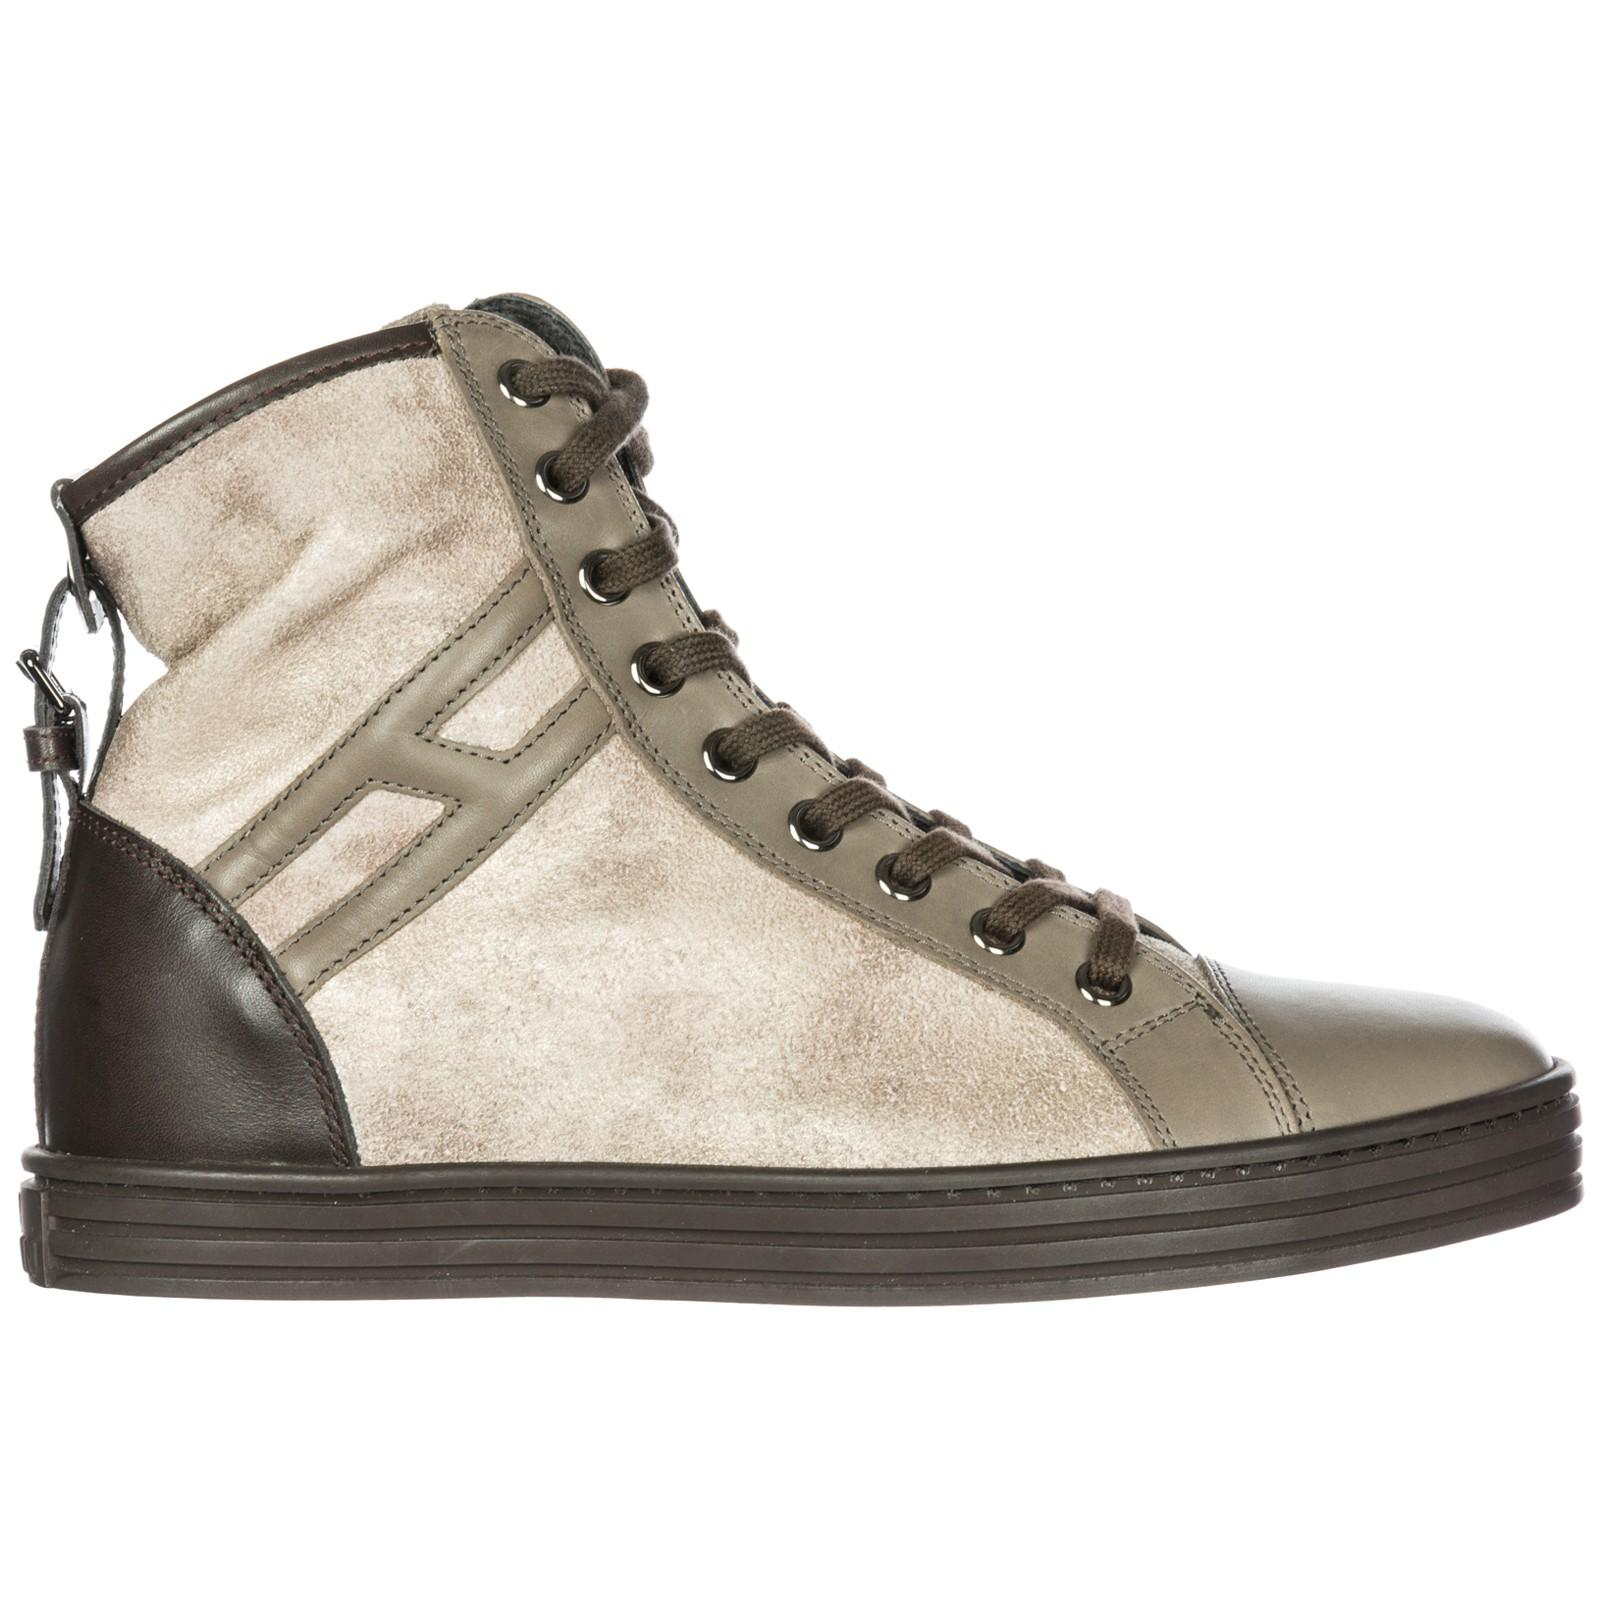 Hogan Rebel Women's Shoes High Top Suede Trainers Sneakers R182 In ...